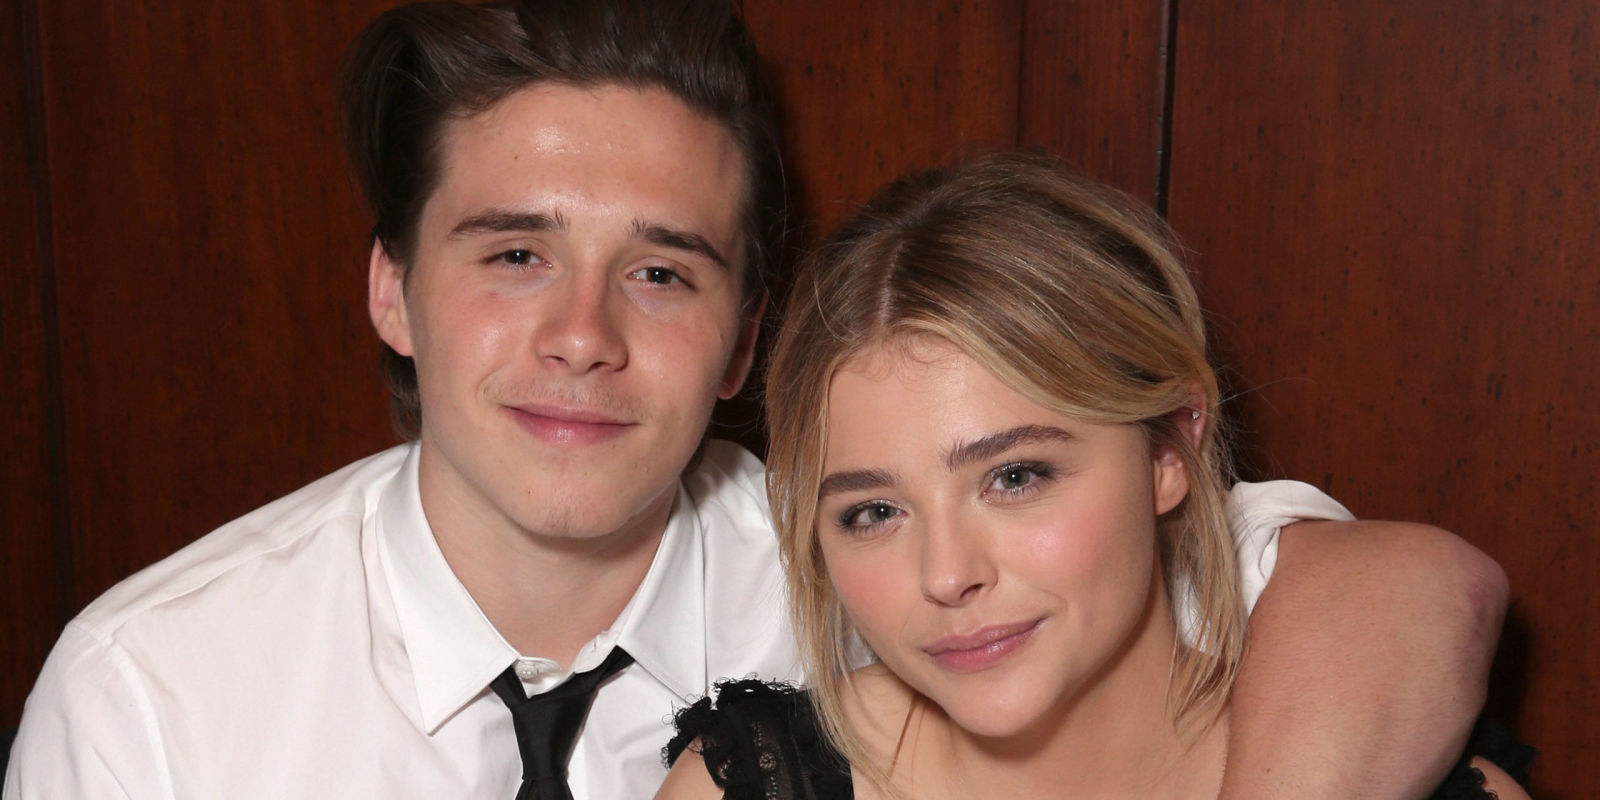 Brooklyn Beckham And Chloë Moretz Are Back Together, If These Instagram Snaps Are Anything To Go By